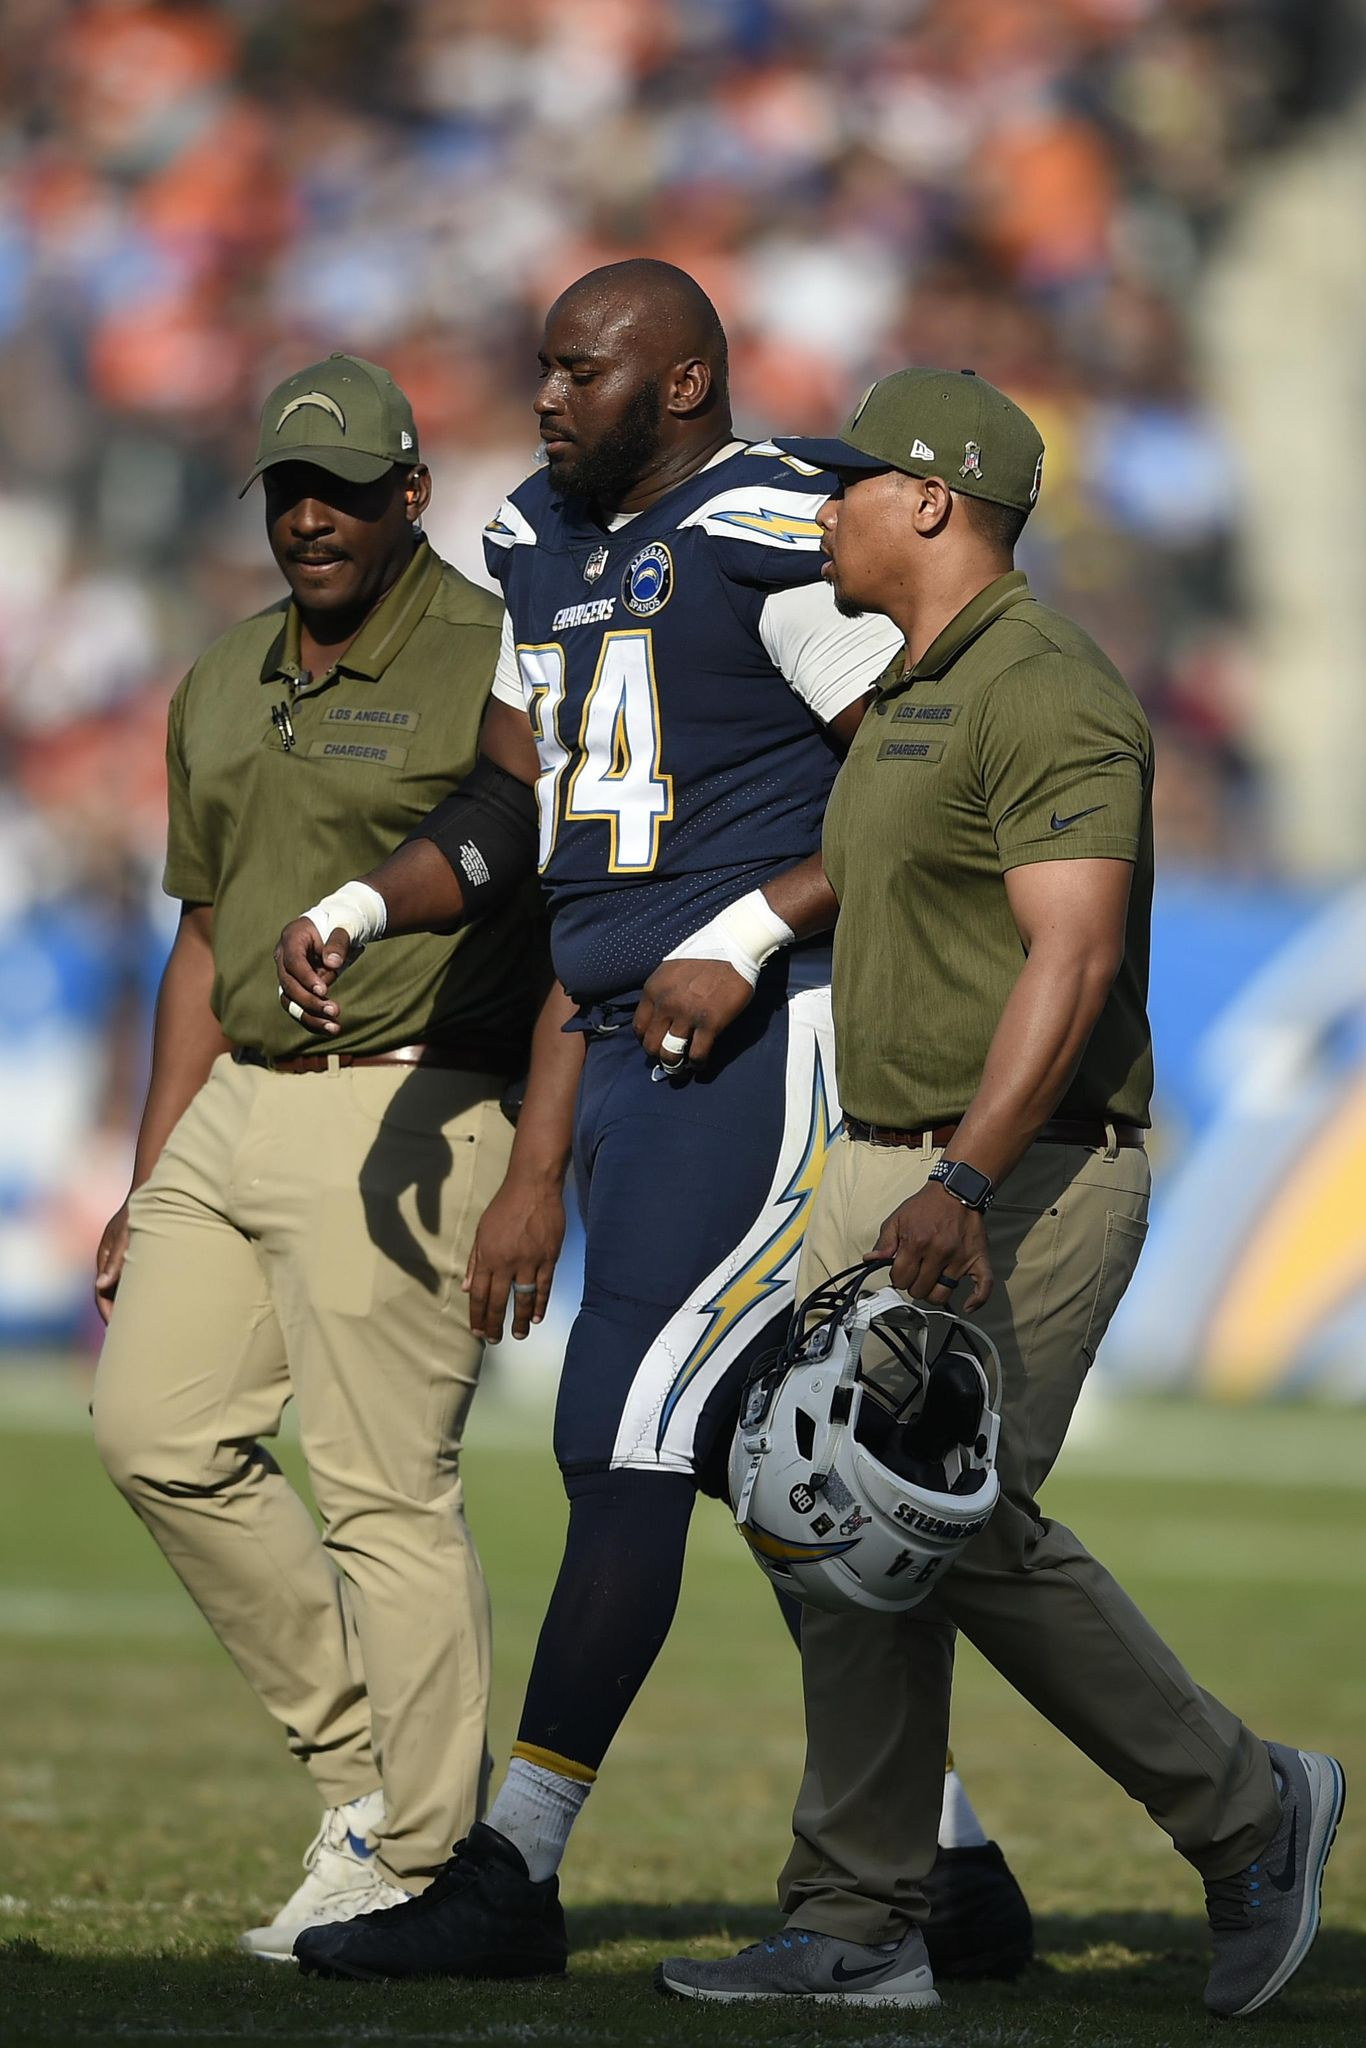 Broncos_chargers_football_99690_s1366x2048